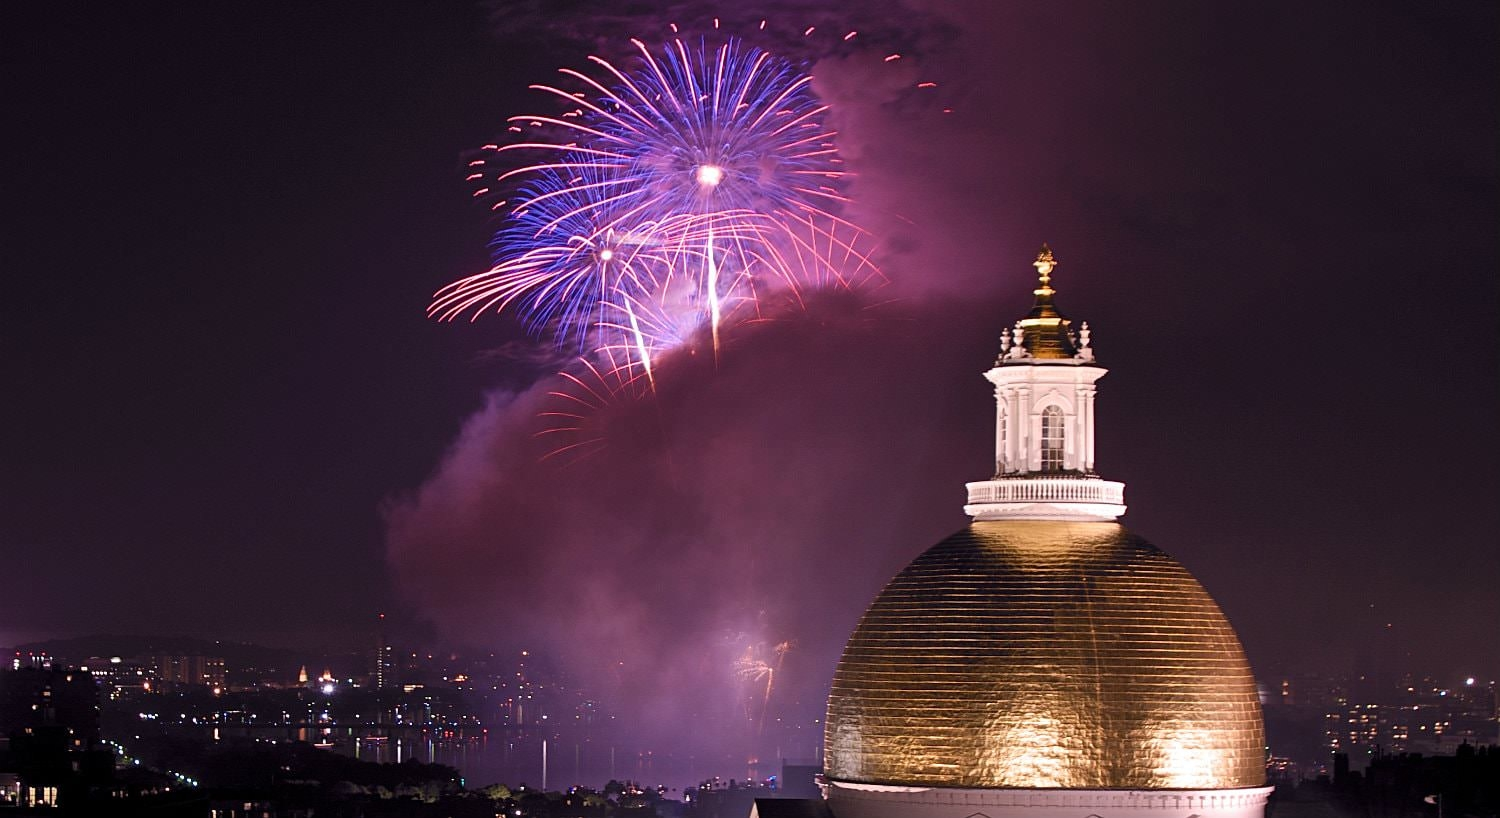 Purple and pink fireworks over the harbor and city lights with golden dome in the forefront